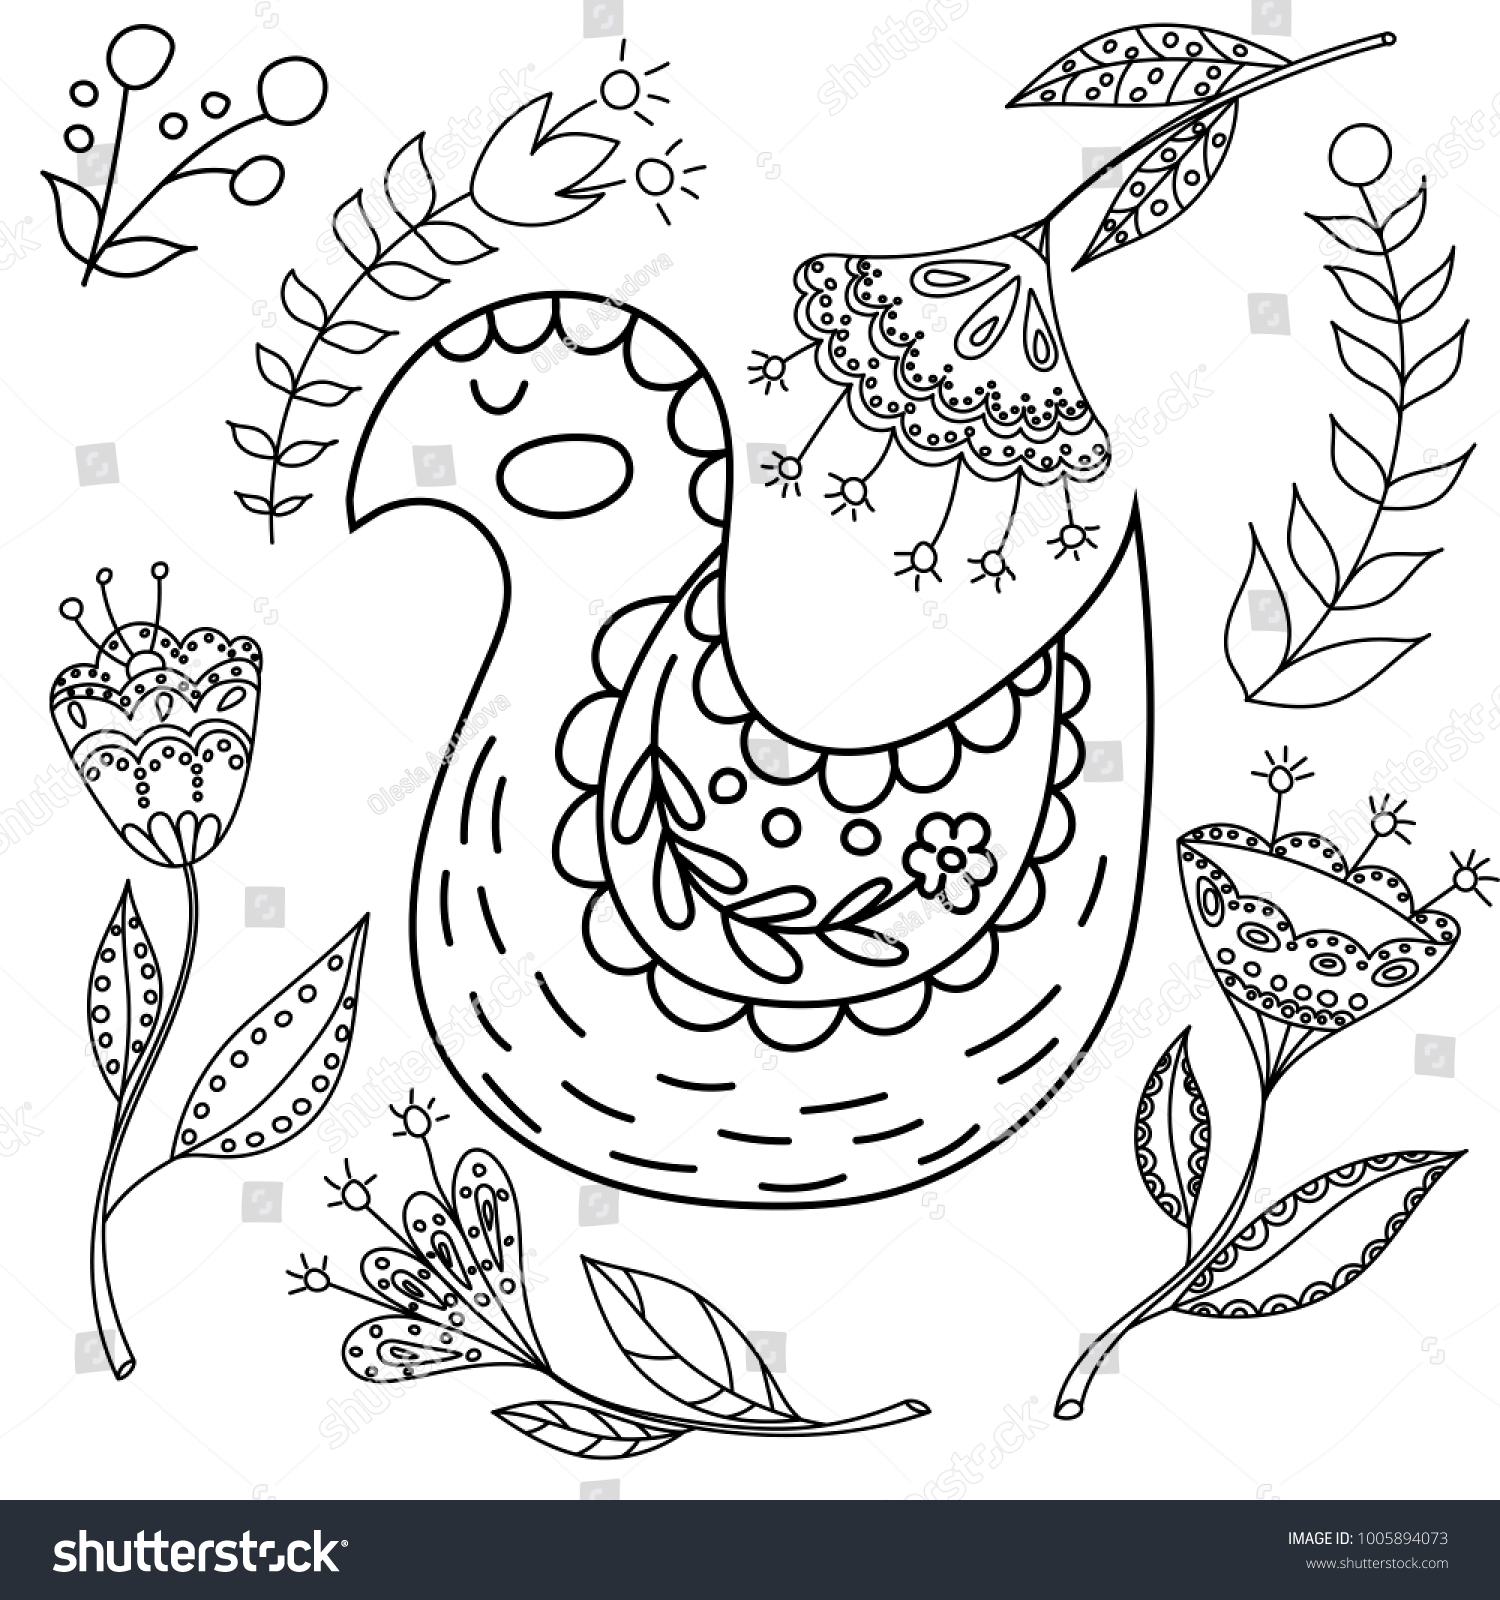 1500x1600 Coloring Excelent Scandinavian Folk Art Coloring Book Photo